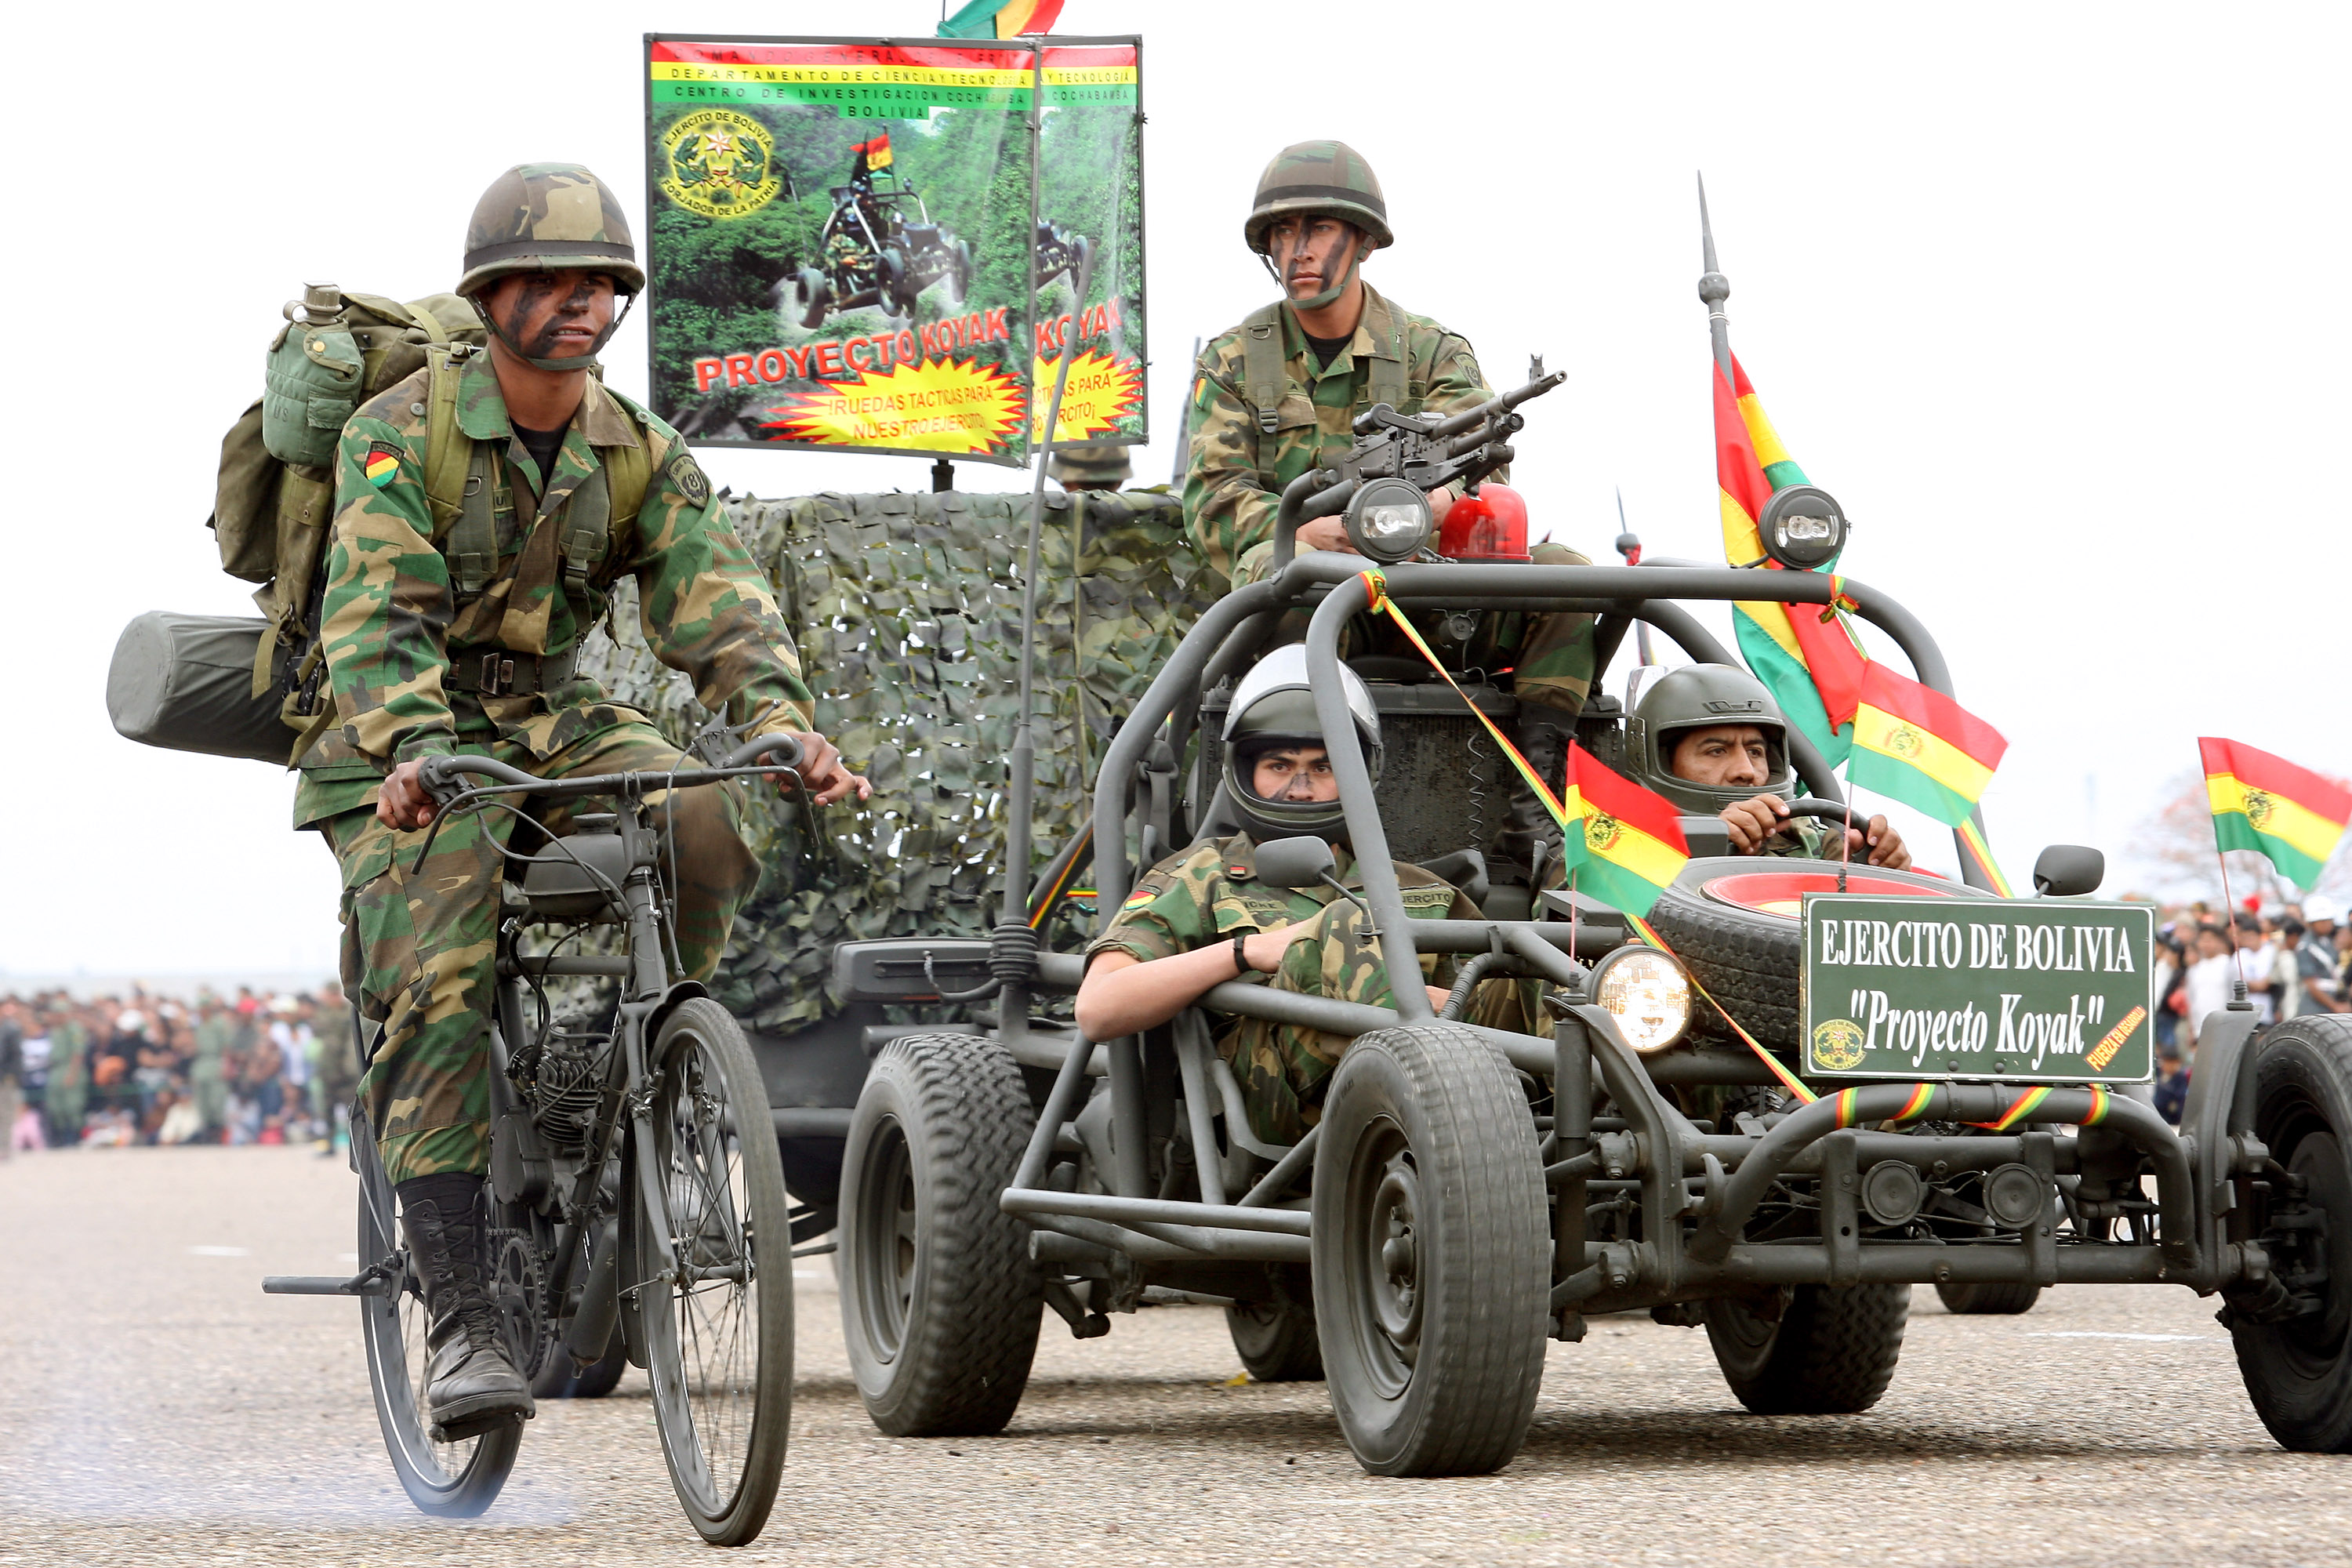 http://www.armyrecognition.com/images/stories/south_america/bolivia/ranks_uniforms/uniforms/pictures/Bolivian_army_Bolivia_soldiers_land_forces_combat-uniforms_003.jpg